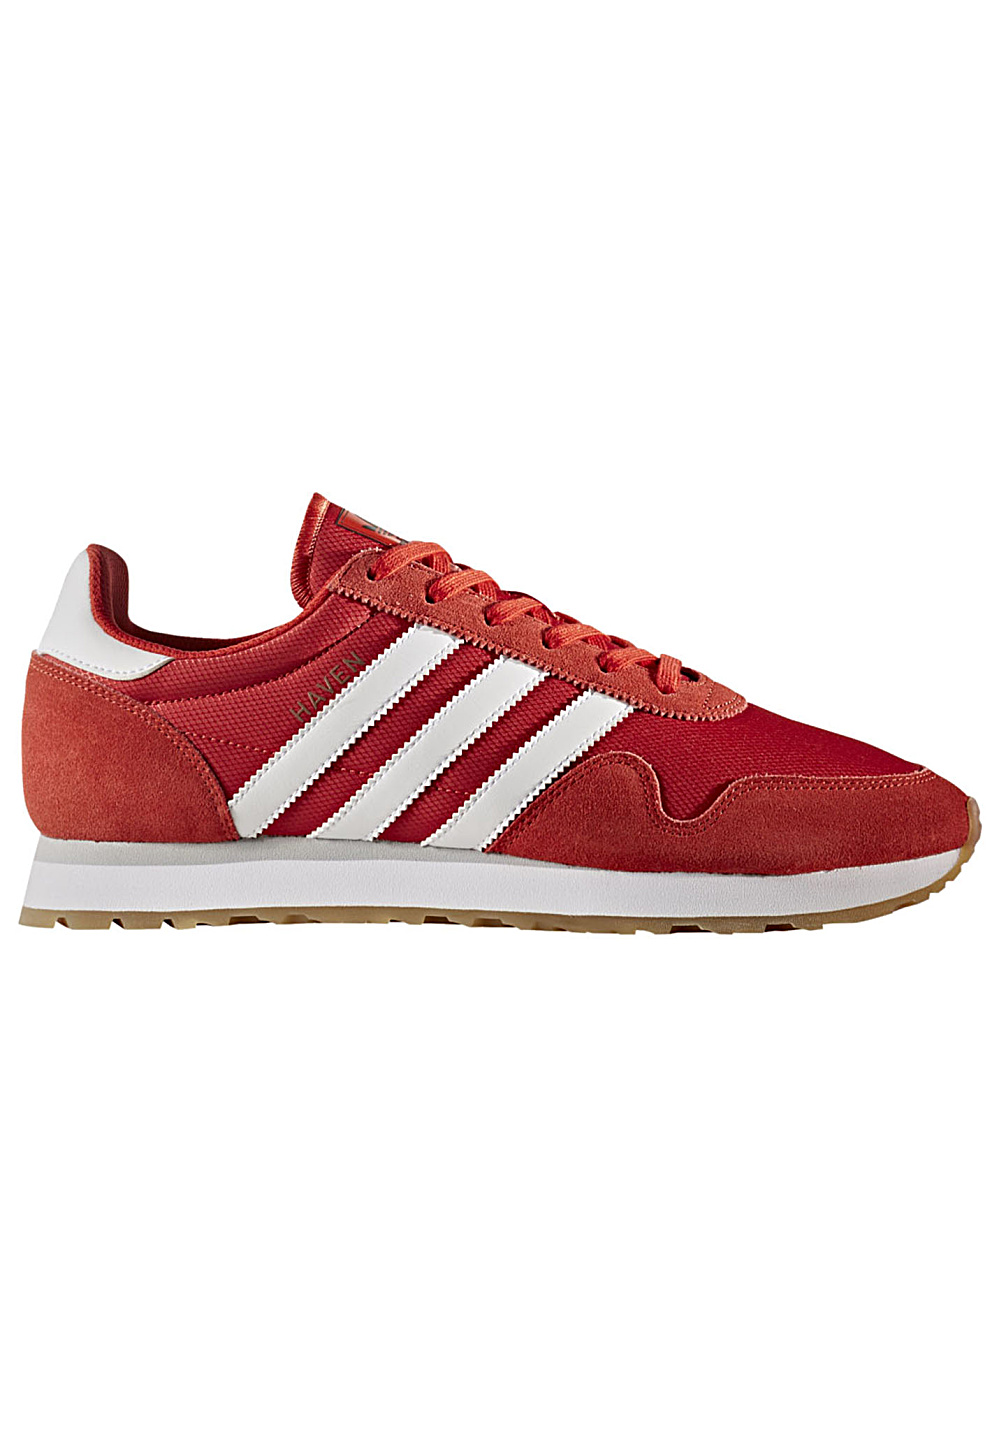 ADIDAS ORIGINALS Haven - Sneakers voor Heren - Rood